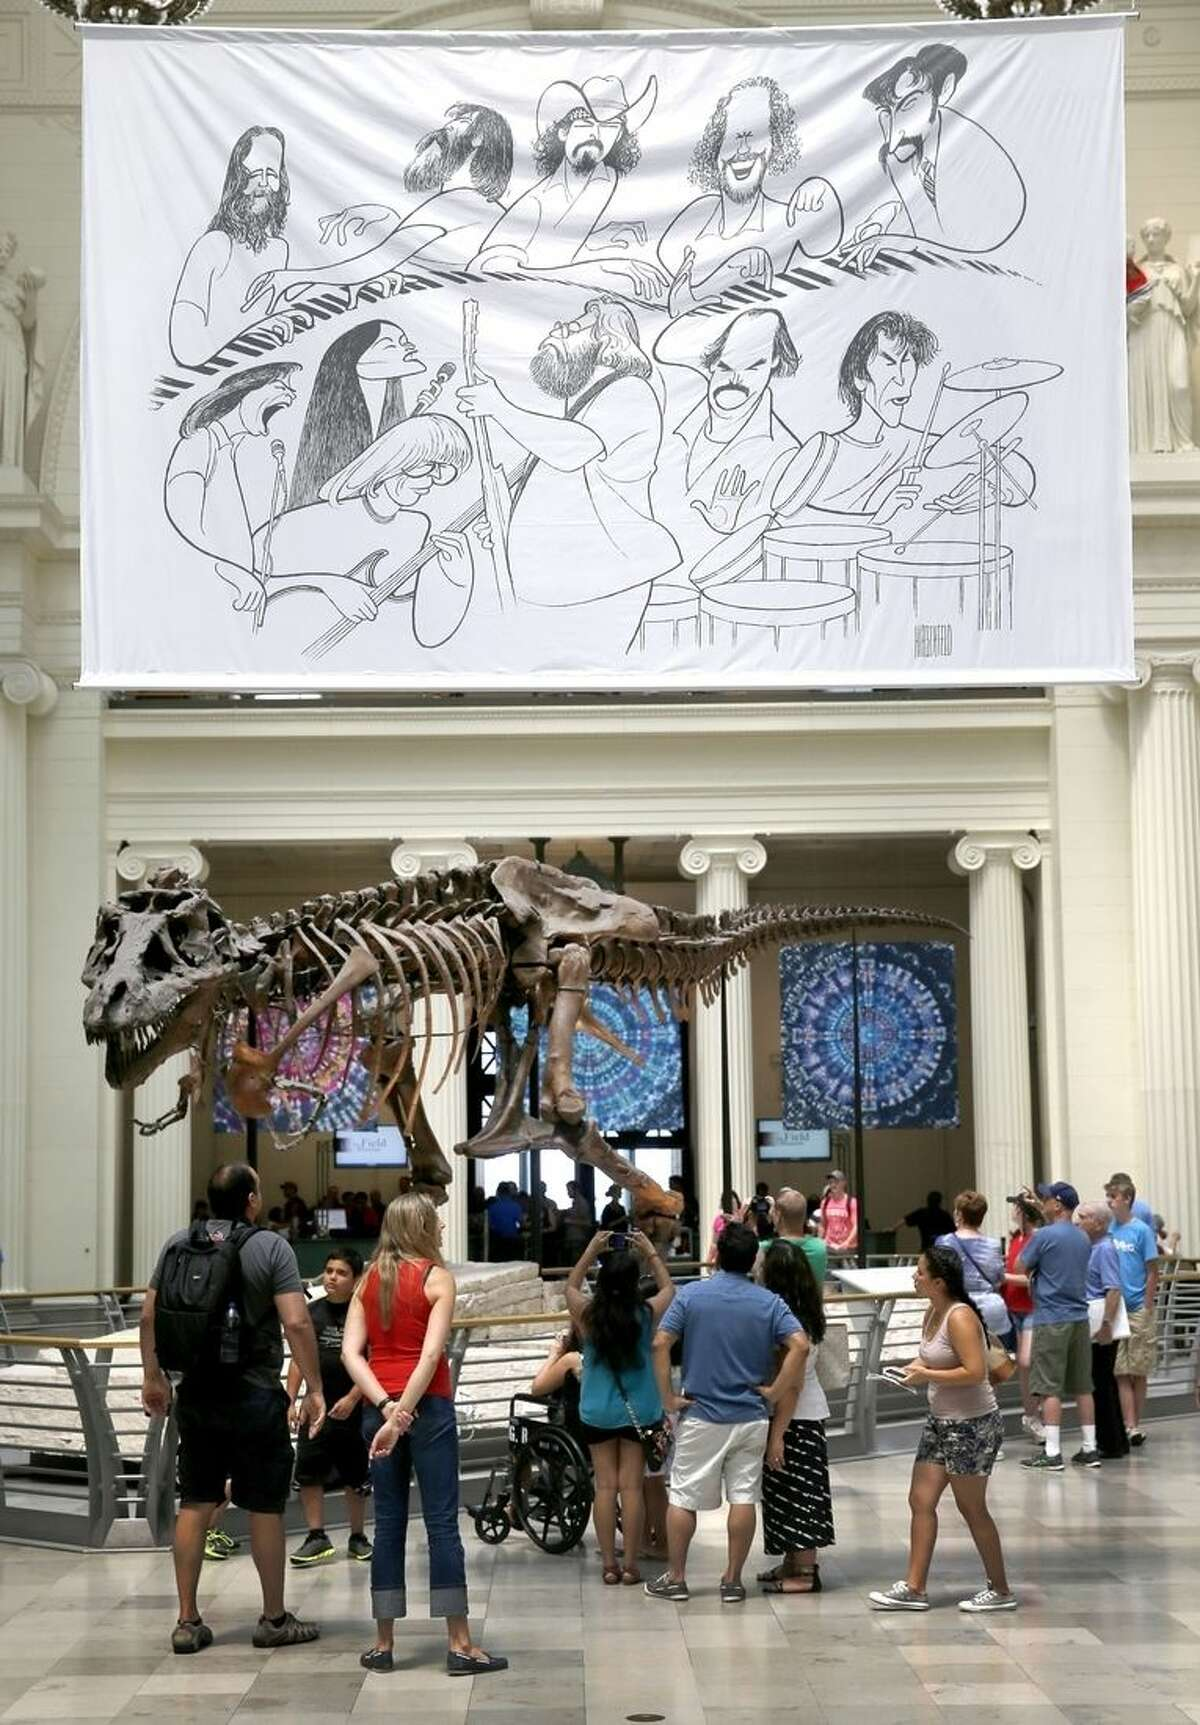 In this photo taken Tuesday, June 30, 2015, a banner of an Al Hirschfeld caricature of the Grateful Band members hangs over the Field Museum's famous Sue, the most extensive Tyrannosaurus rex specimen ever found, as part of a Dead exhibit in Chicago. The Dead will perform over the July 4th weekend at Soldier Field. (AP Photo/Charles Rex Arbogast)